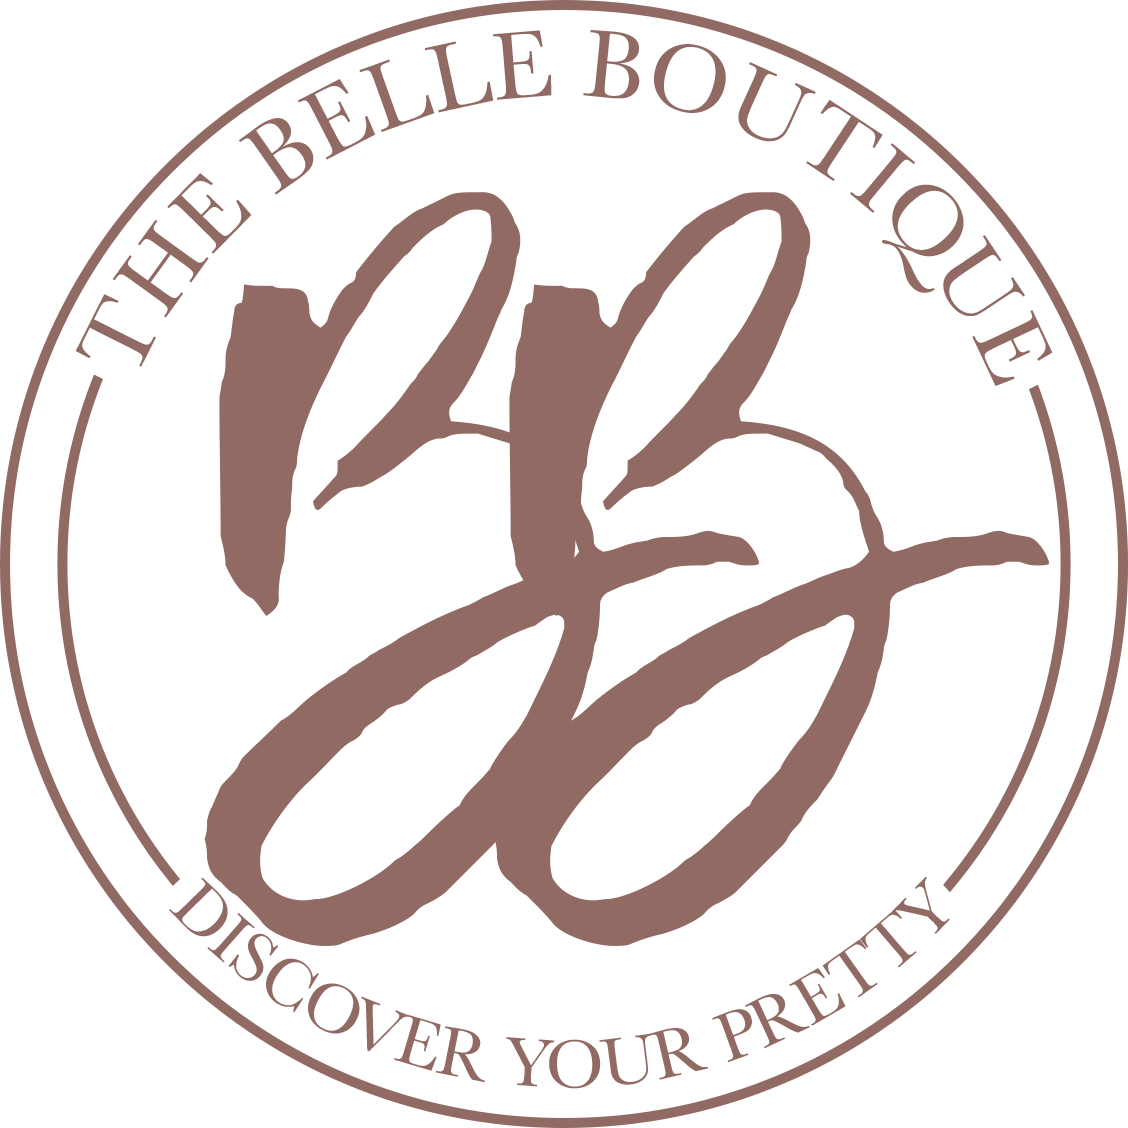 The Belle Boutique